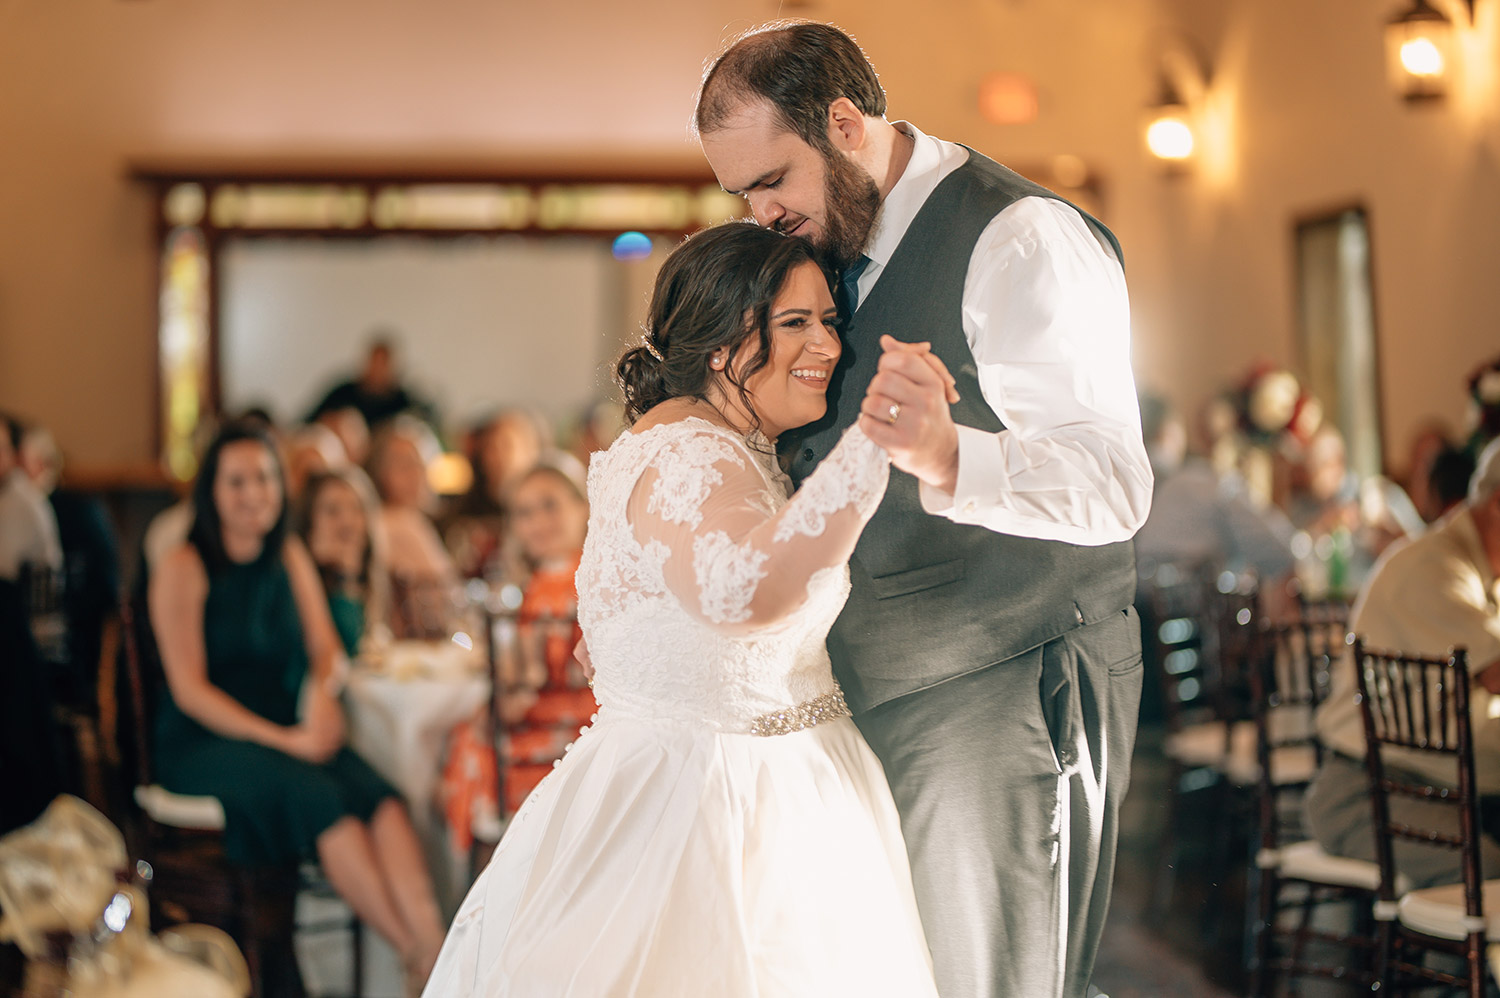 bride and groom first dance during wedding at cotton gin no. 116